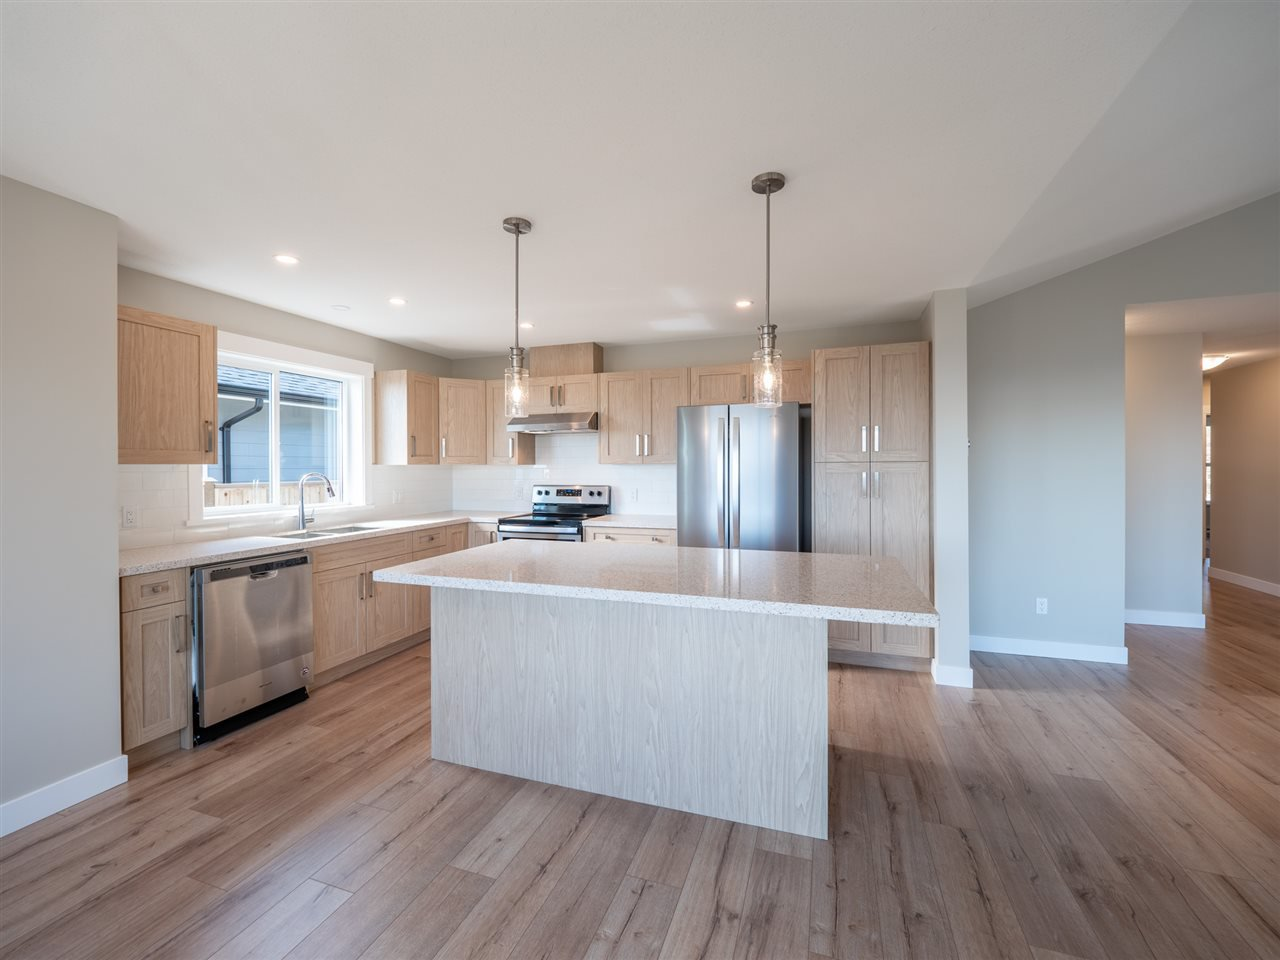 """Photo 9: Photos: 5634 KINGBIRD Crescent in Sechelt: Sechelt District House for sale in """"SilverStone Heights Phase2"""" (Sunshine Coast)  : MLS®# R2466073"""